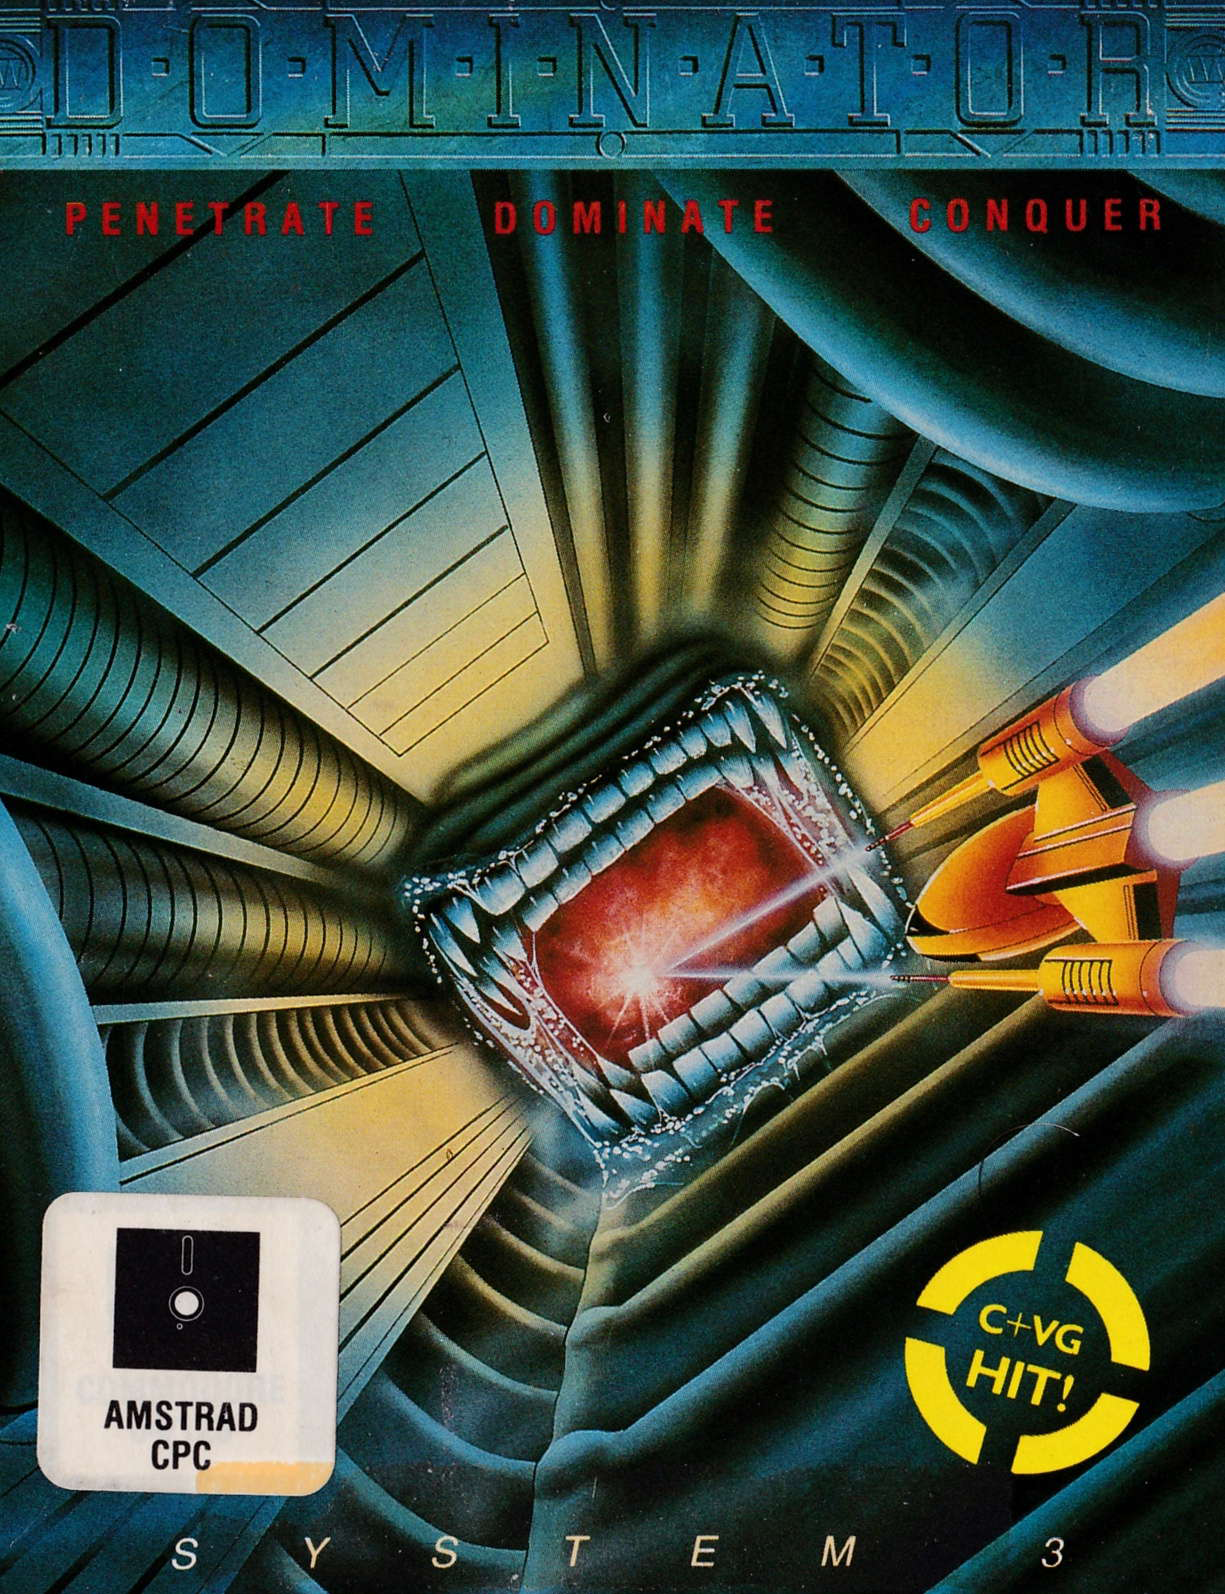 cover of the Amstrad CPC game Dominator  by GameBase CPC